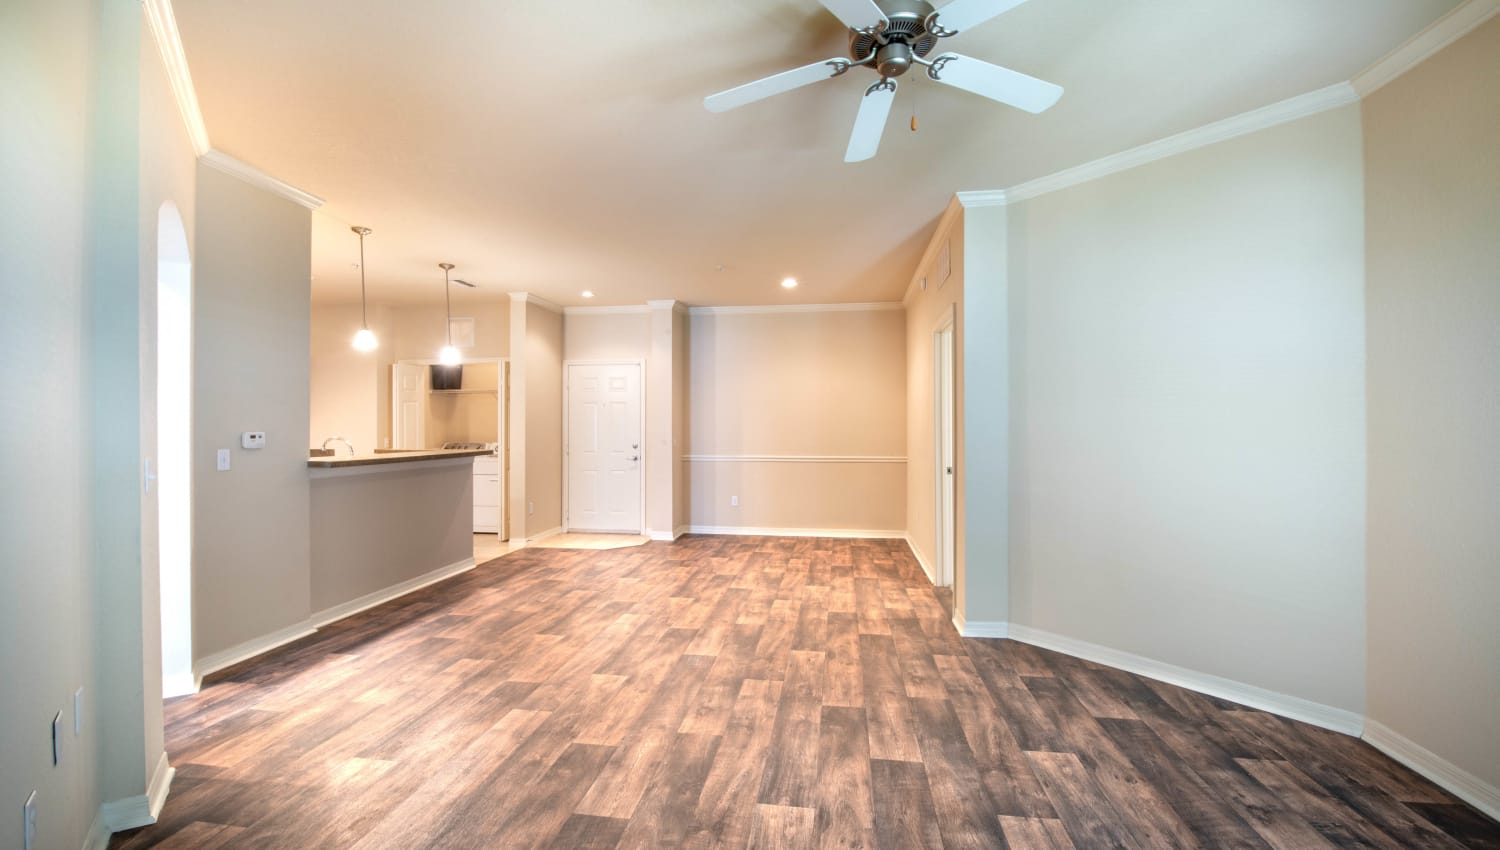 Ceiling fan in the living area of a model home at Mirador & Stovall at River City in Jacksonville, Florida